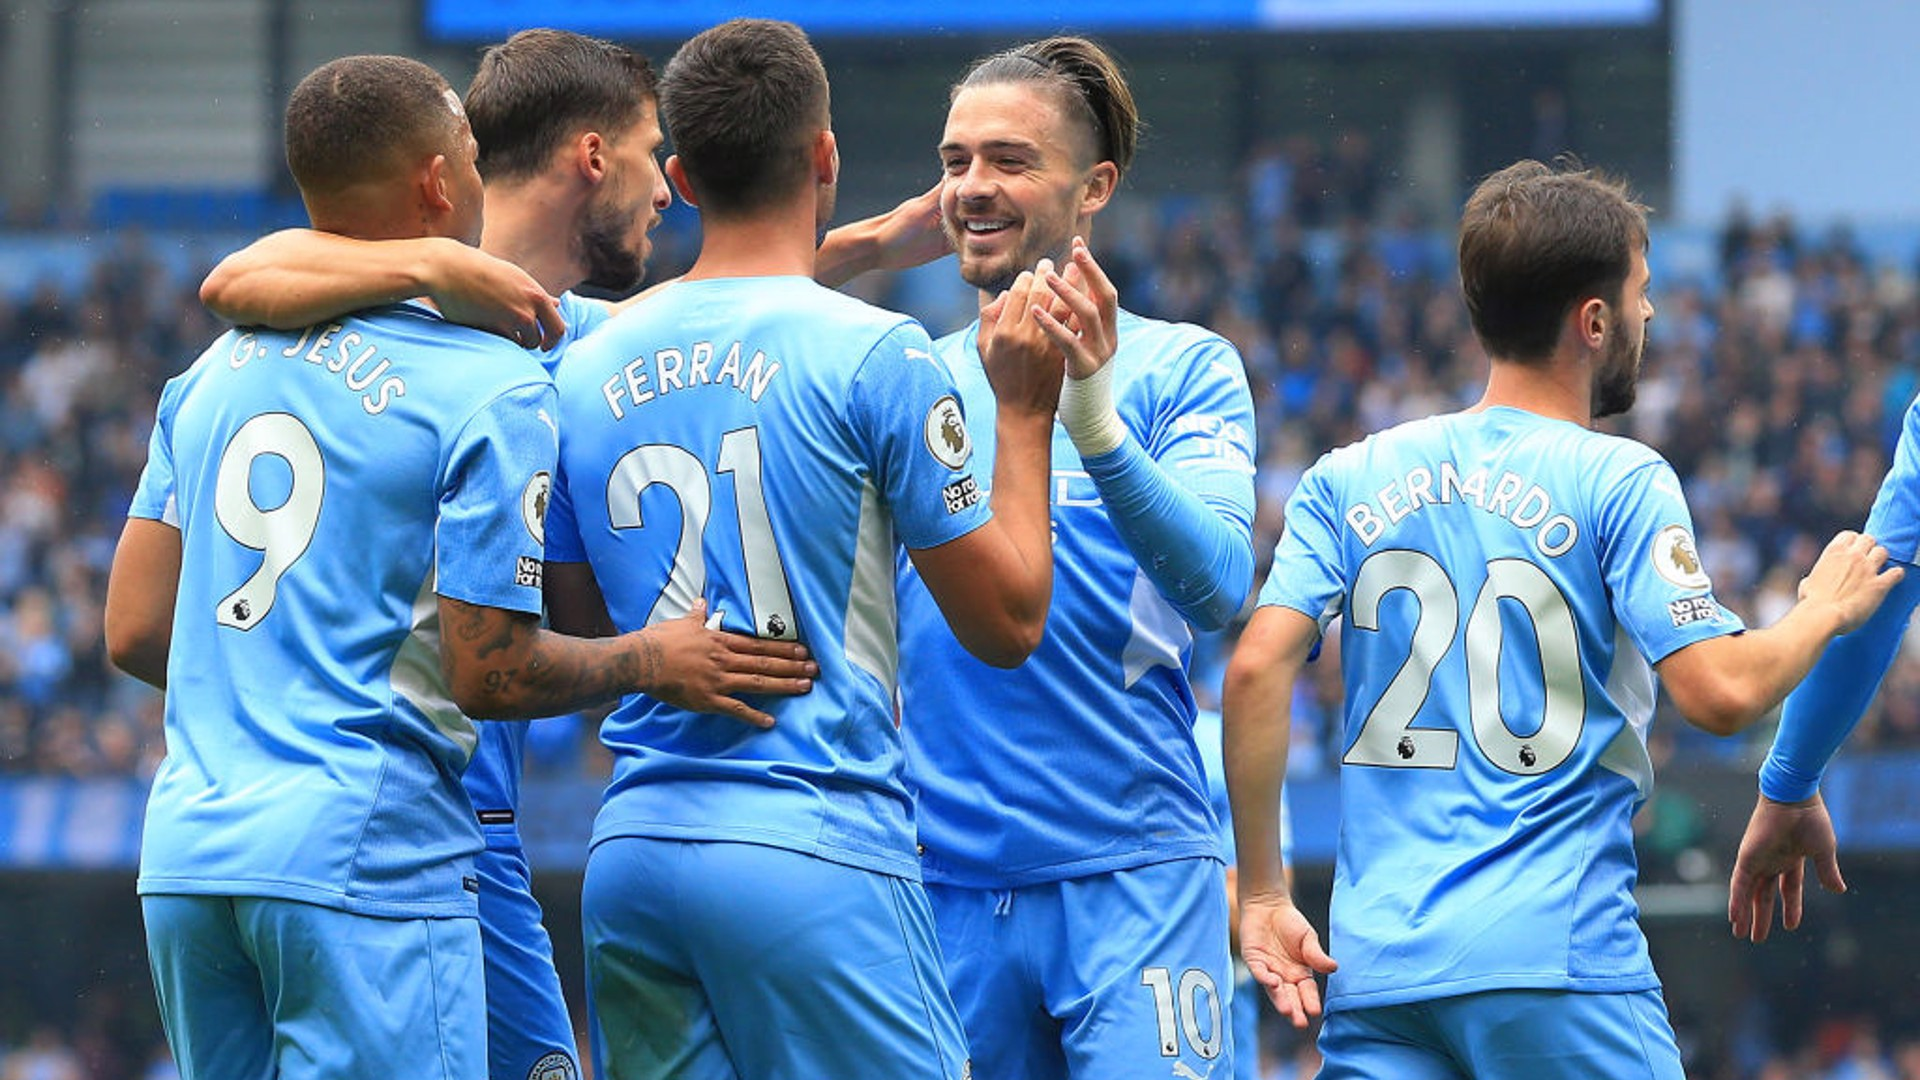 City v Wycombe: Kick-off time, team news and TV information